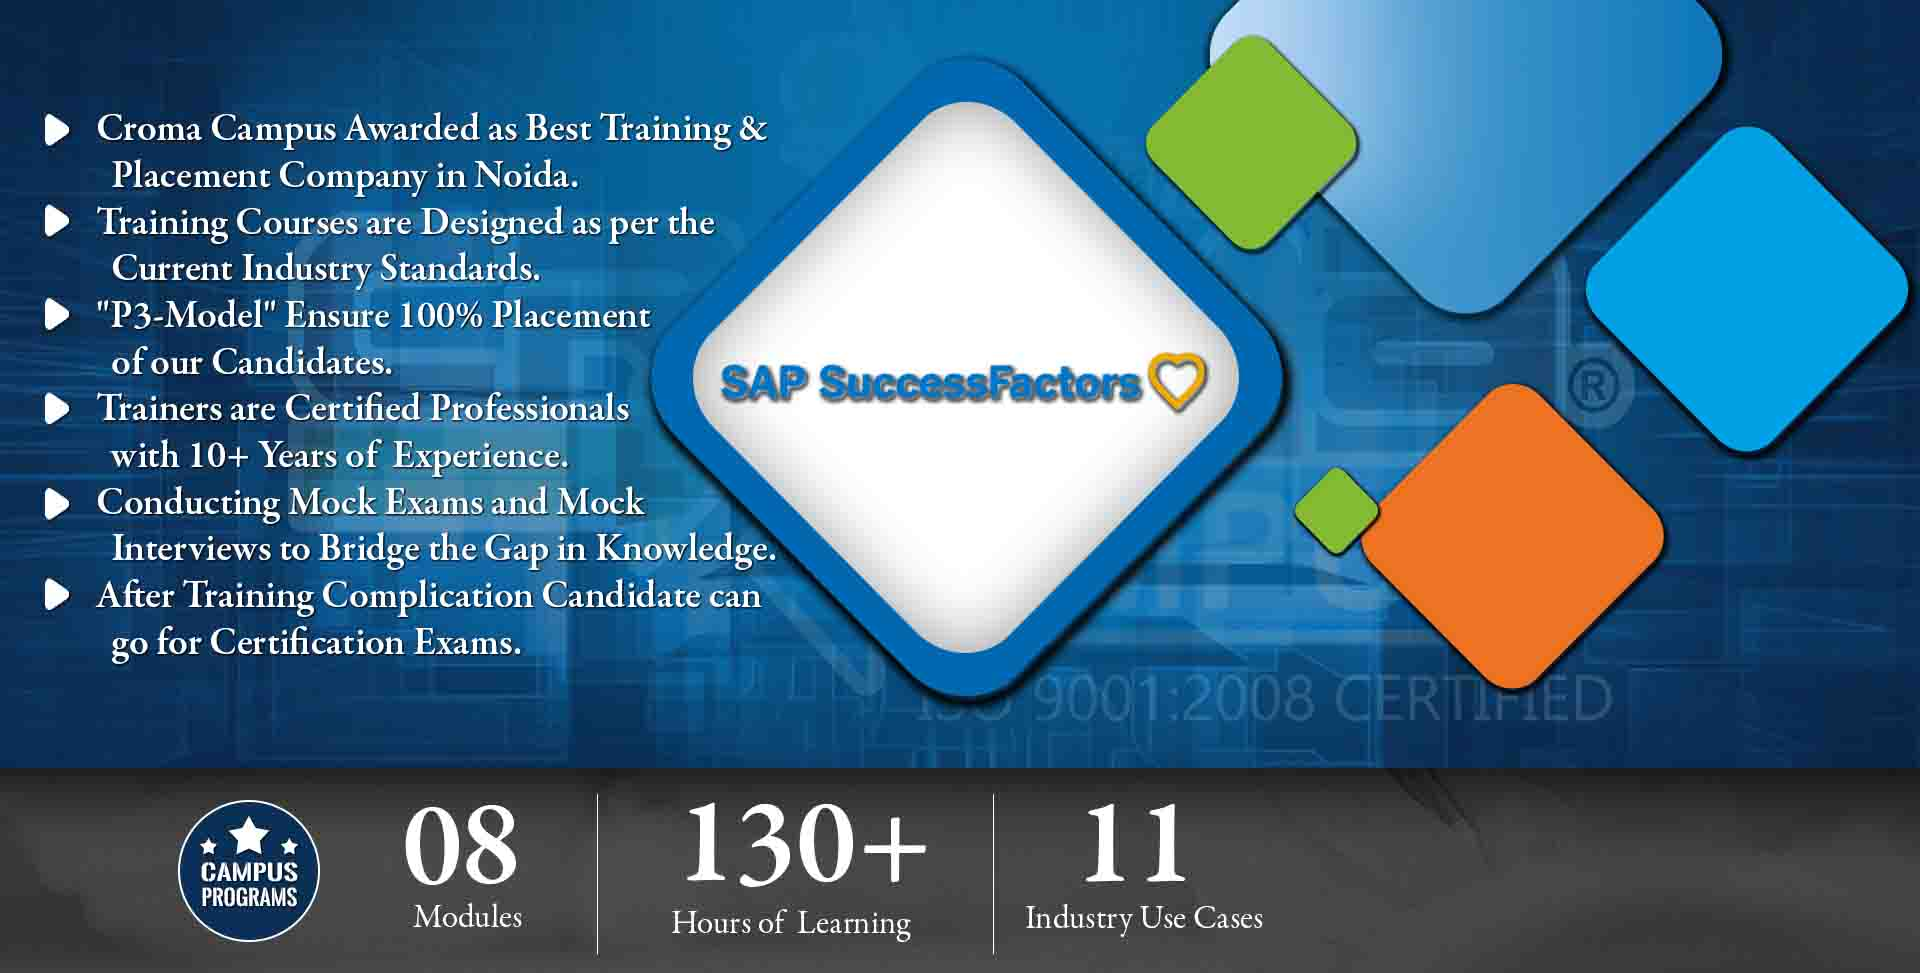 SAP SuccessFactors Training in Delhi NCR- Croma Campus